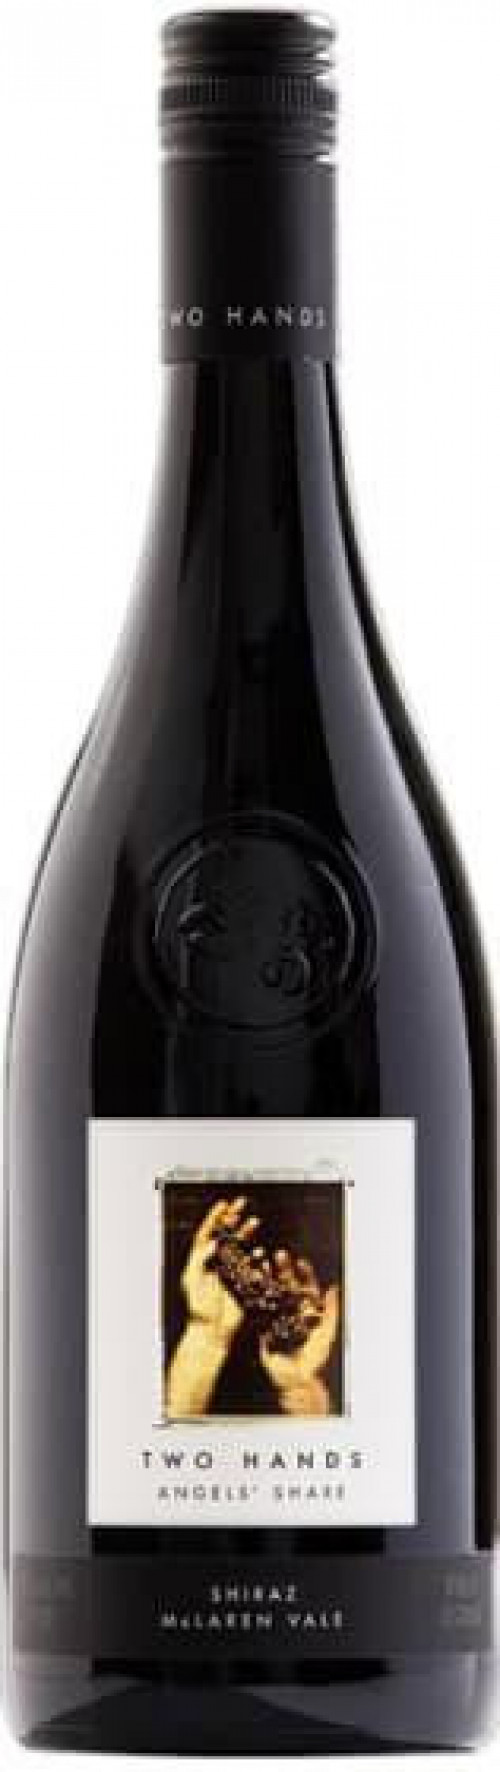 Two Hands Angels Share Shiraz 750ml